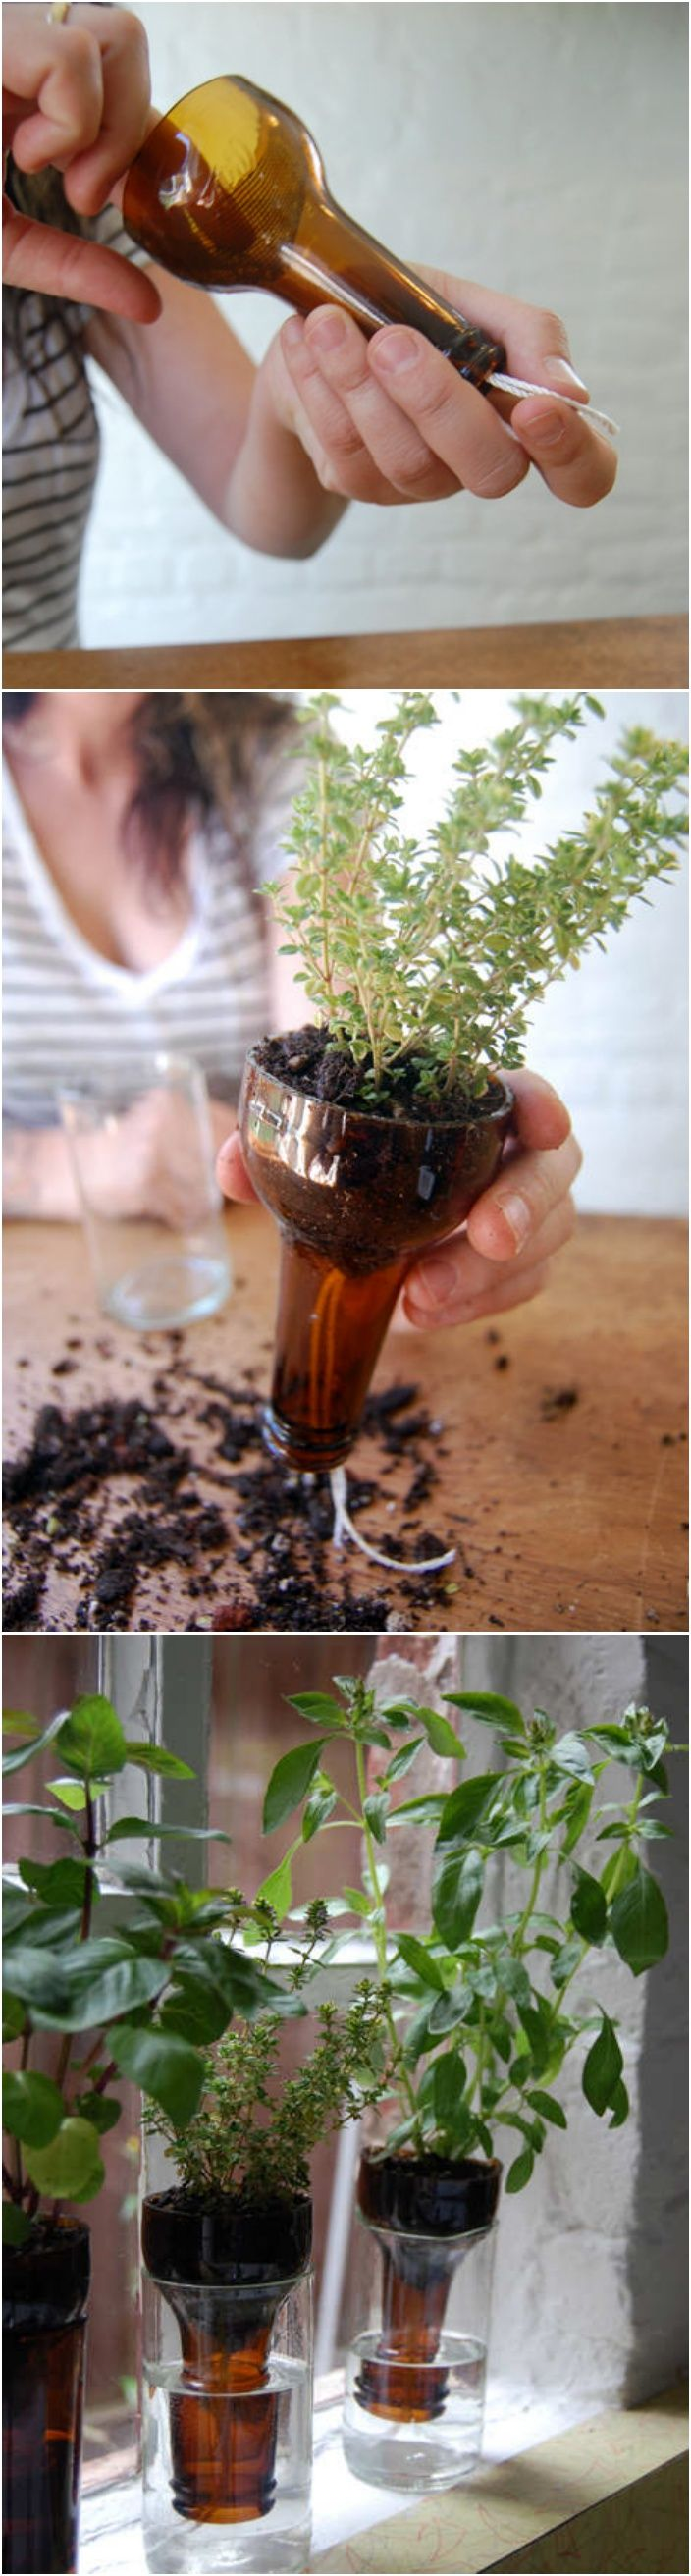 18 Indoor Herb Garden Ideas---DIY Bottle Garden